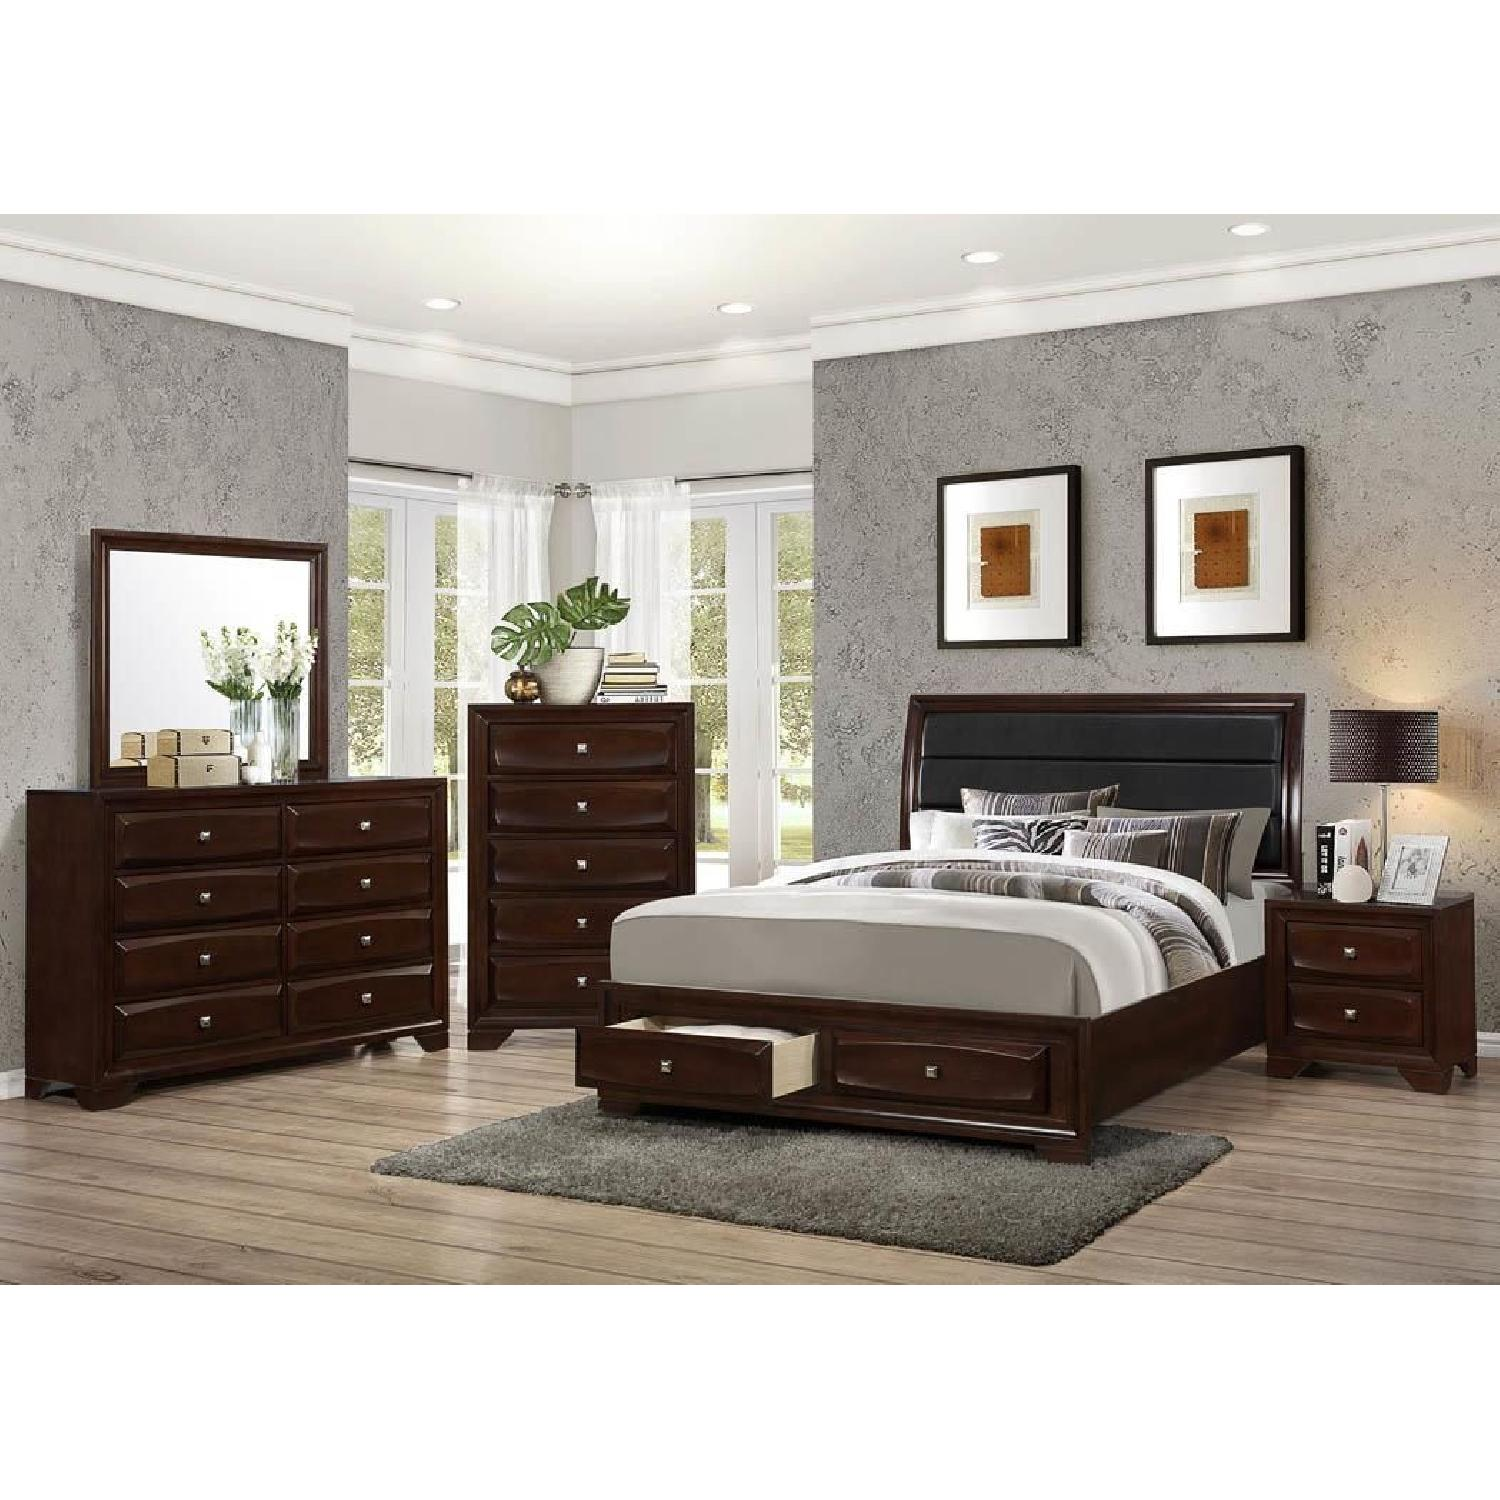 Queen Platform Bed w/ Drawers & Leatherette Headboard - image-3